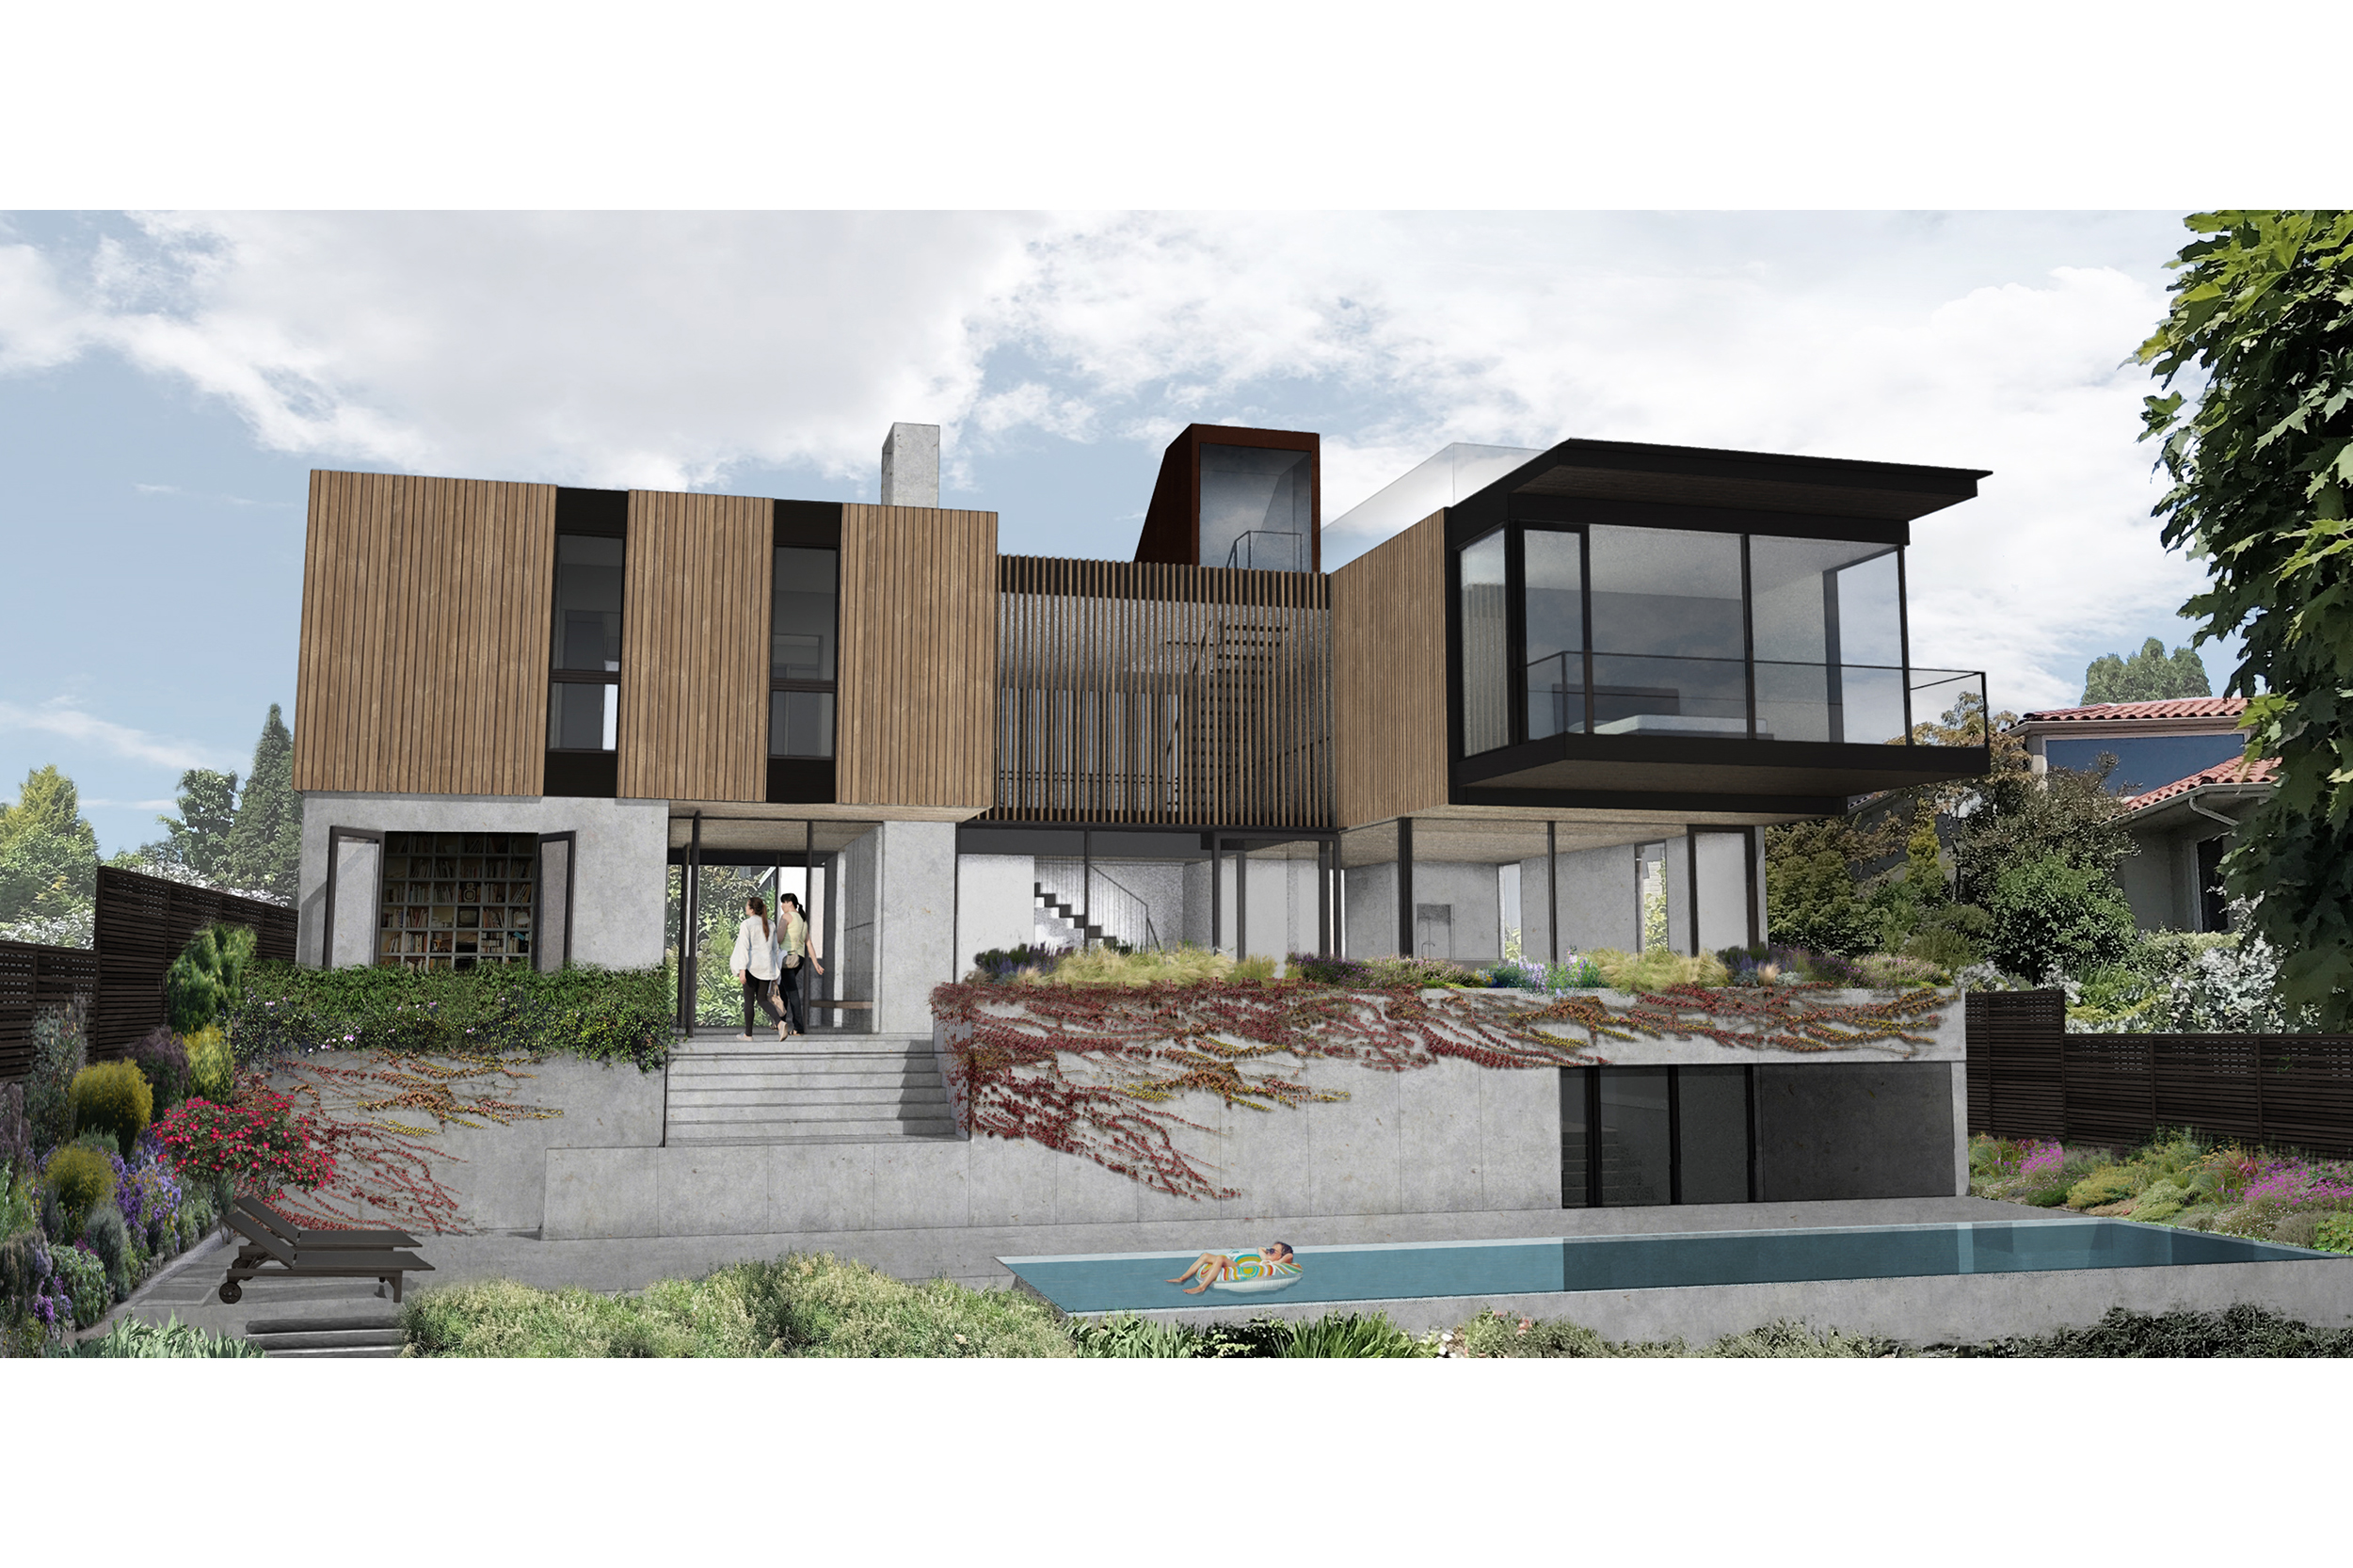 goCstudio_magnolia house_south rendering.jpg